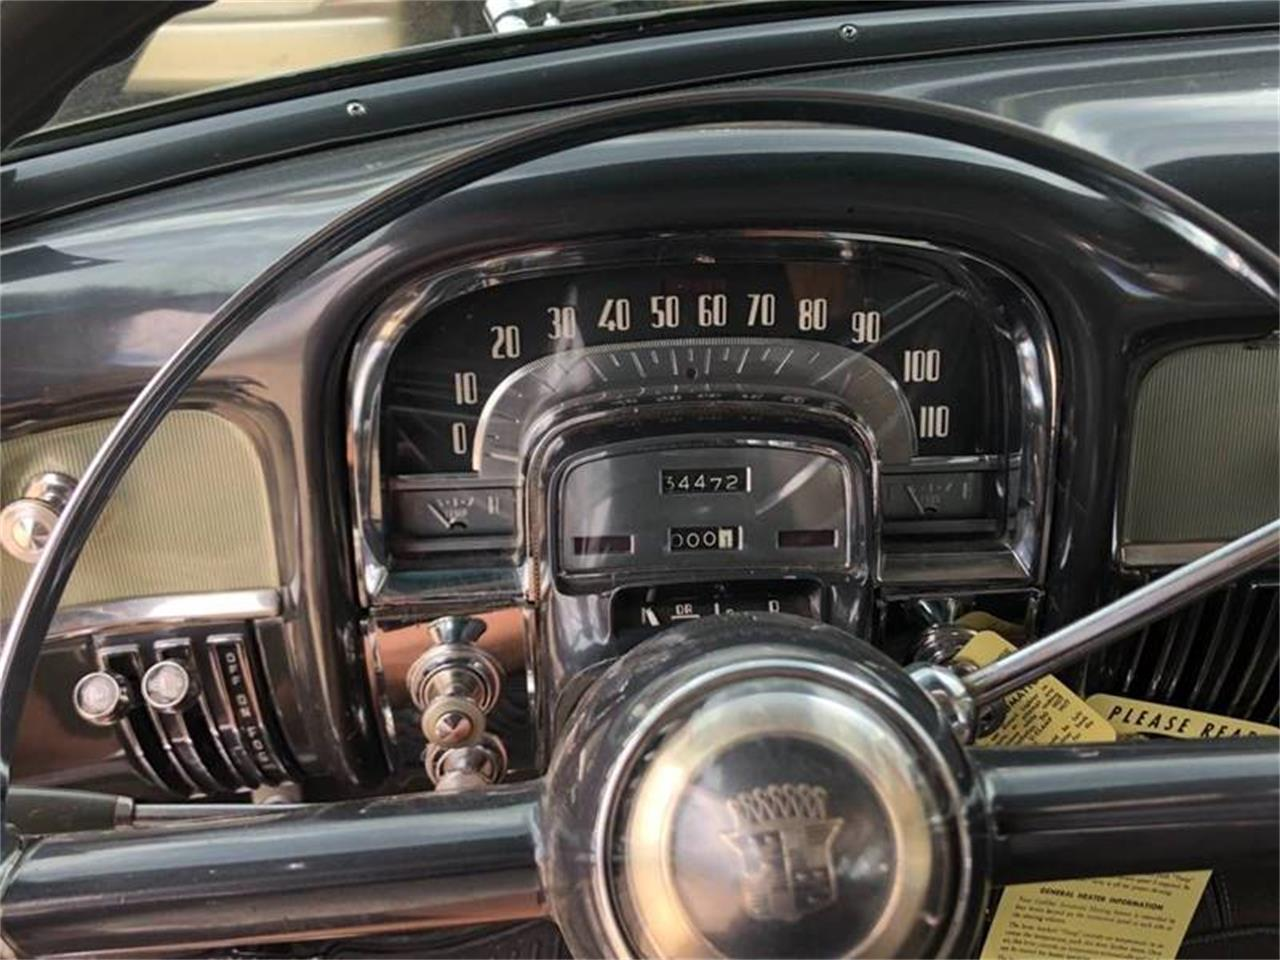 1953 Cadillac DeVille for sale in Long Island, NY ...